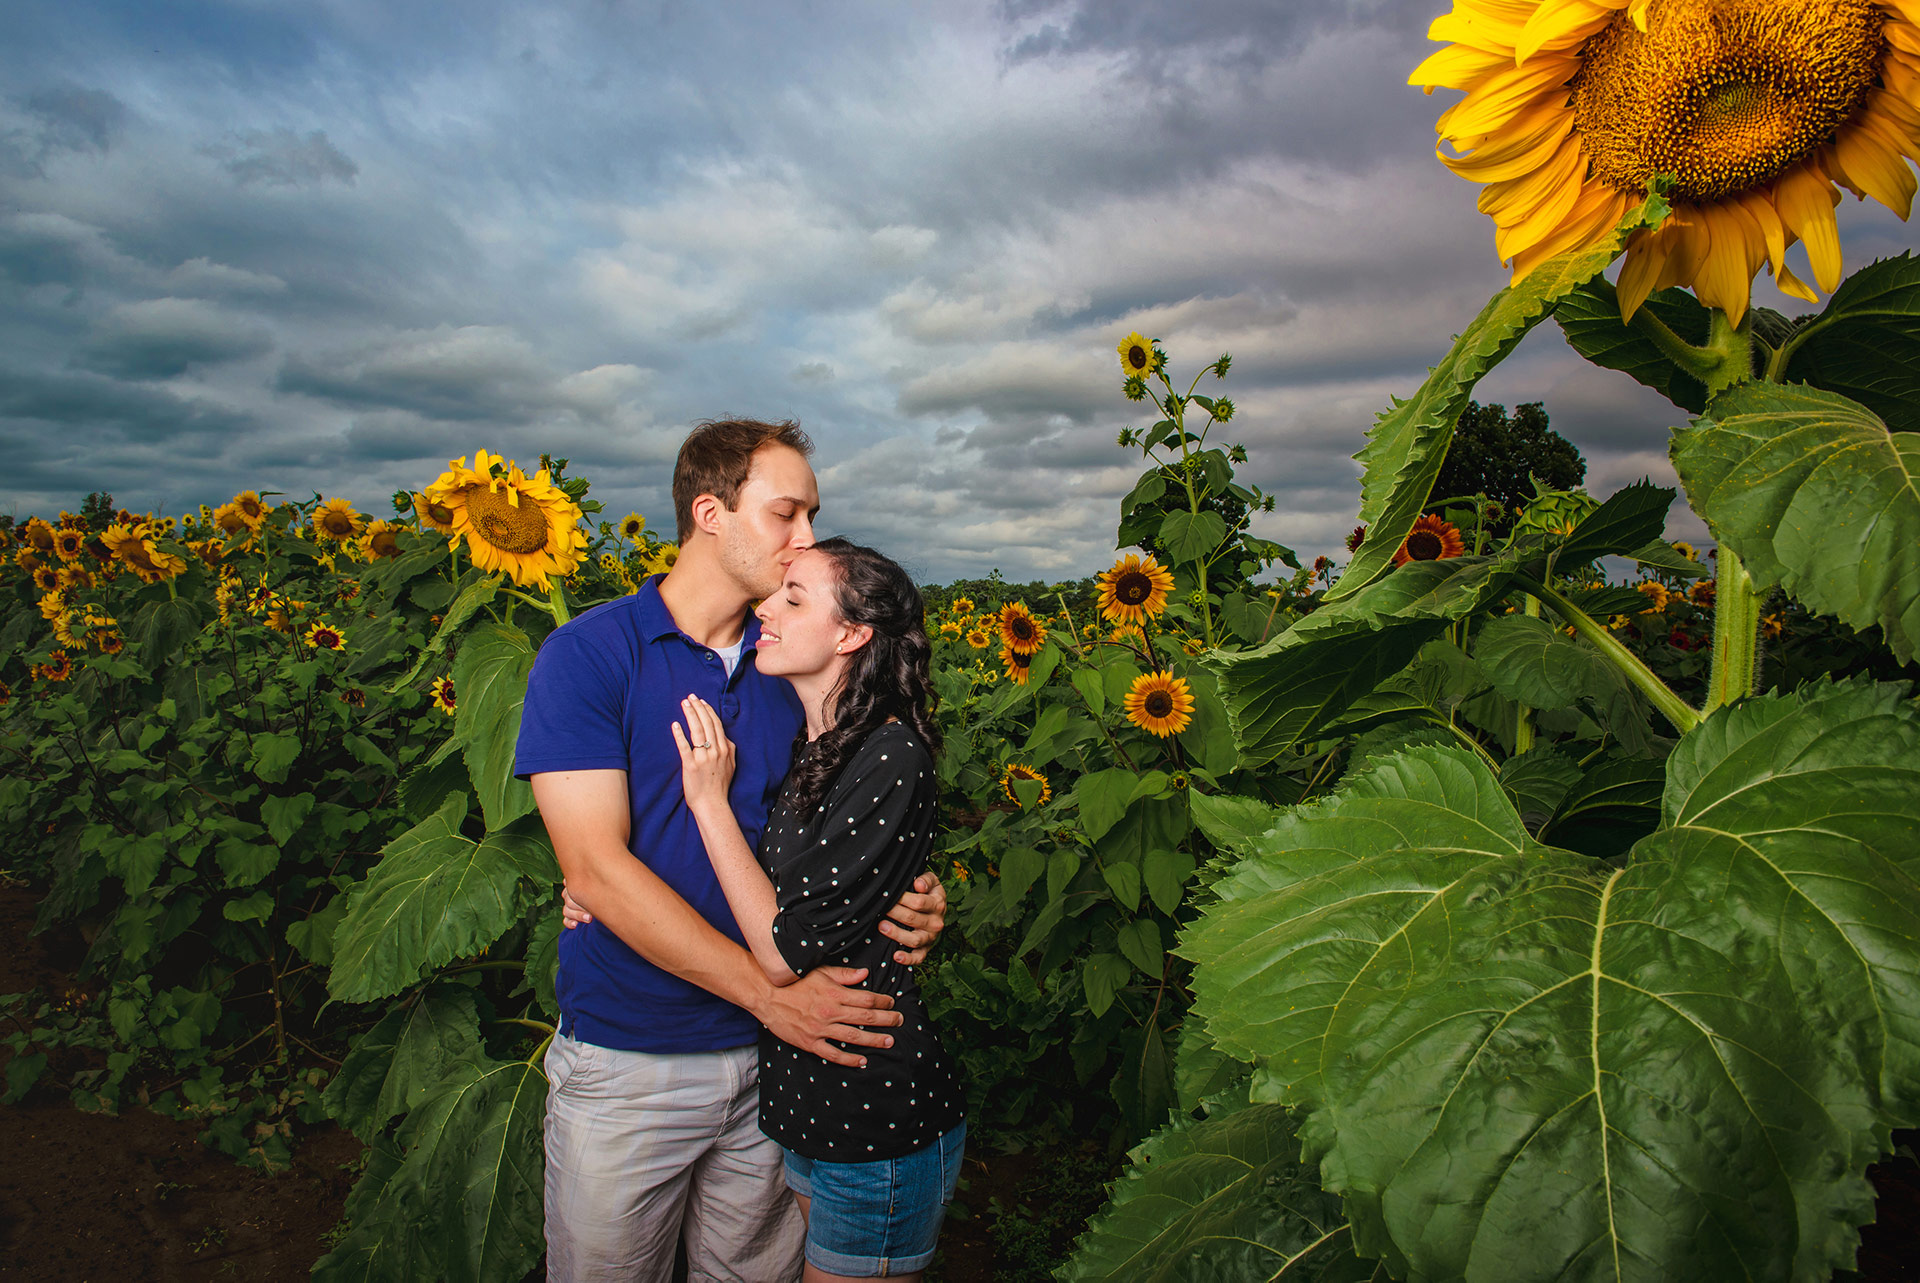 NJ engagement photographer sunflower farm shoot jobstown NJ 342.jpg